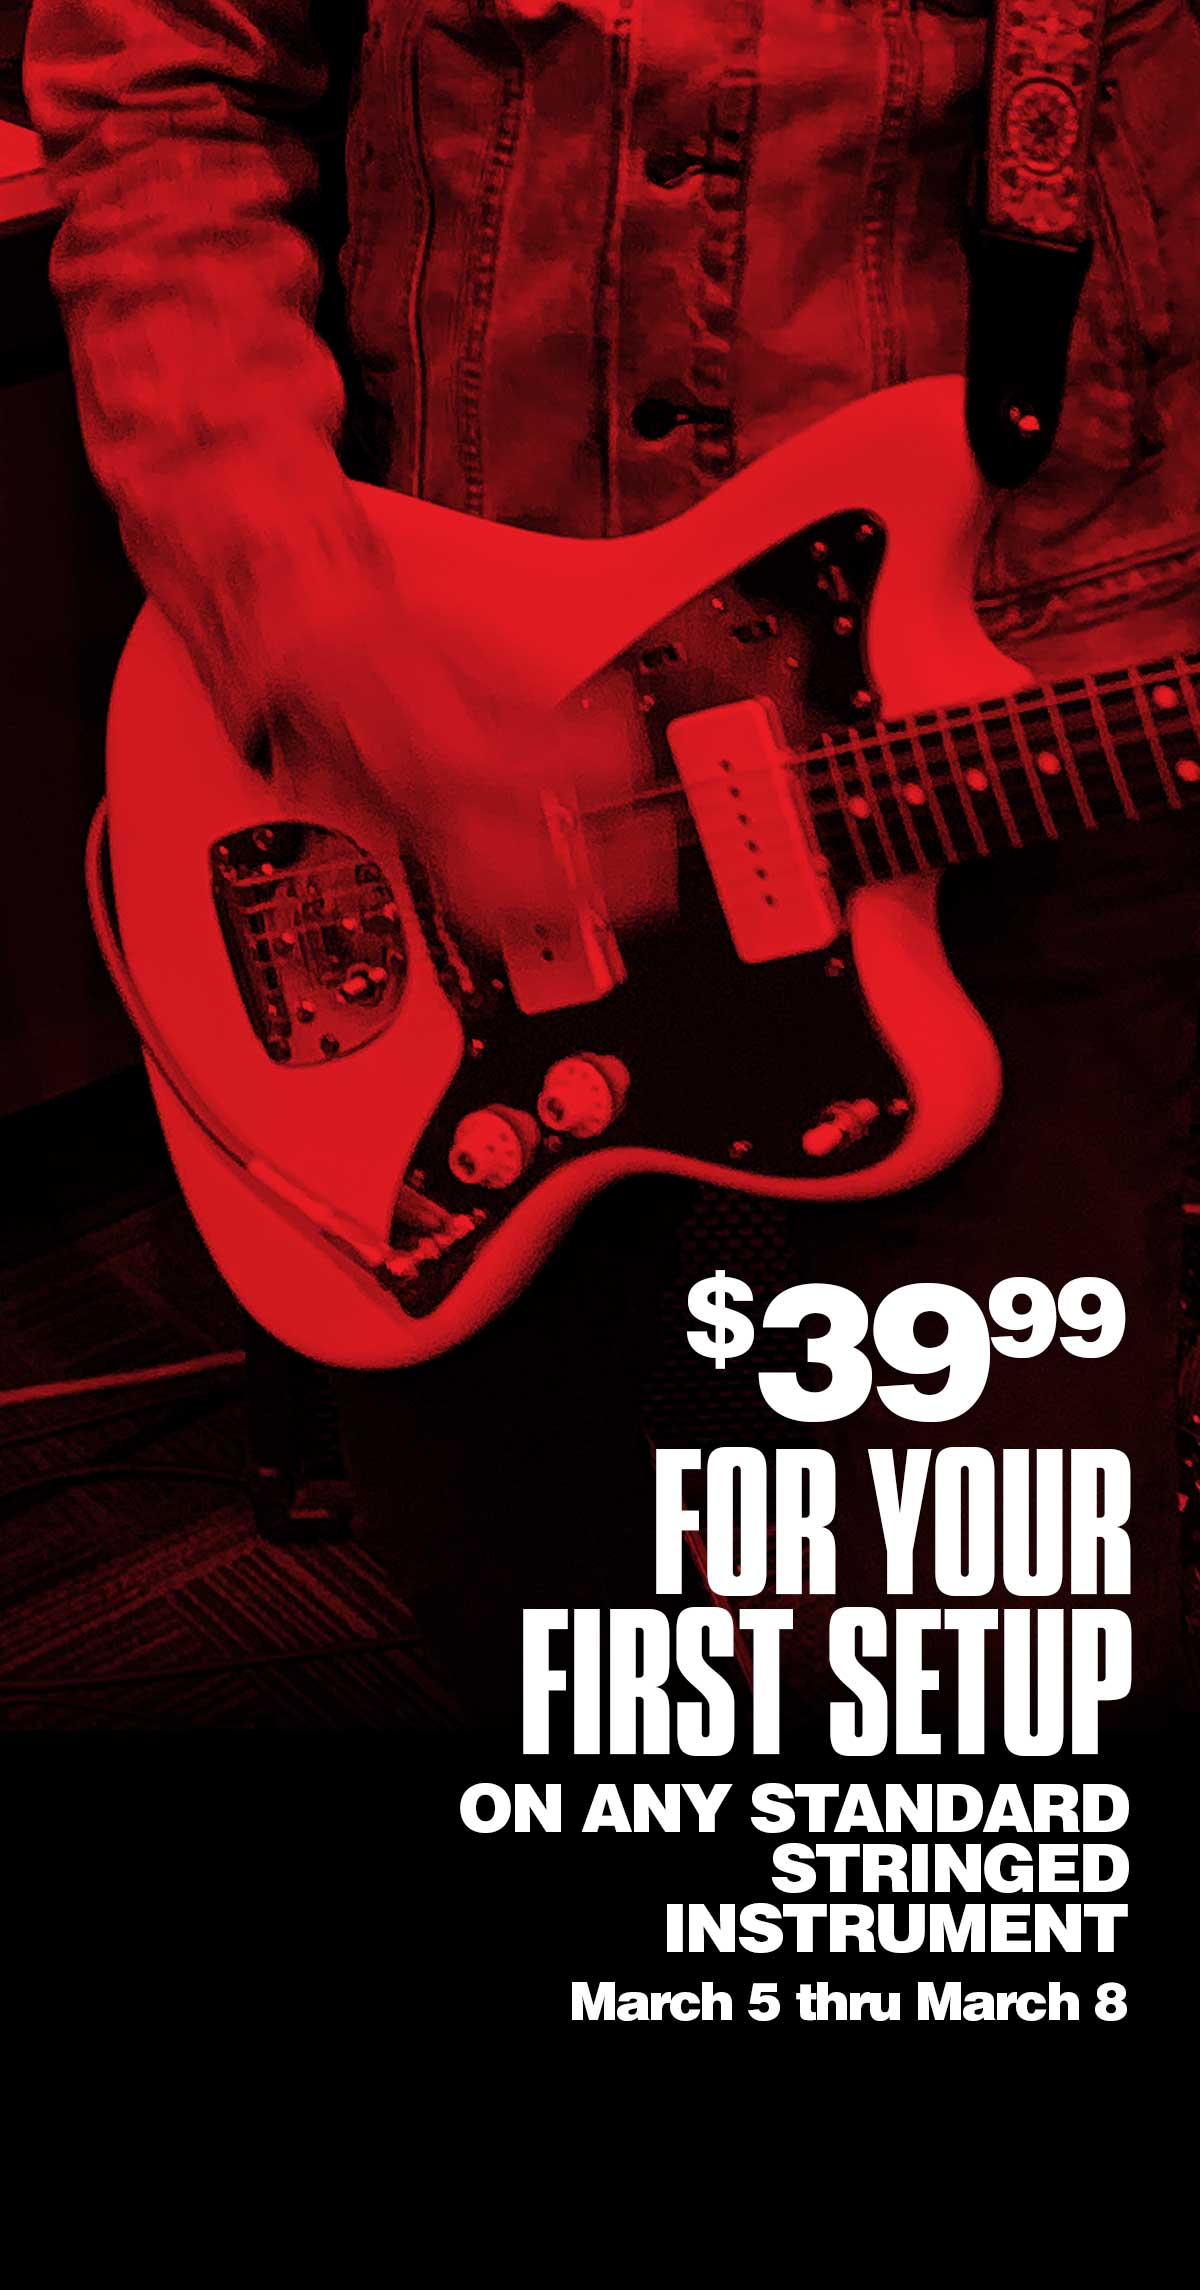 $39.99 FOR YOUR FIRST SETUP ON ANY STANDARD STRINGED INSTRUMENT March 5 thru March 8